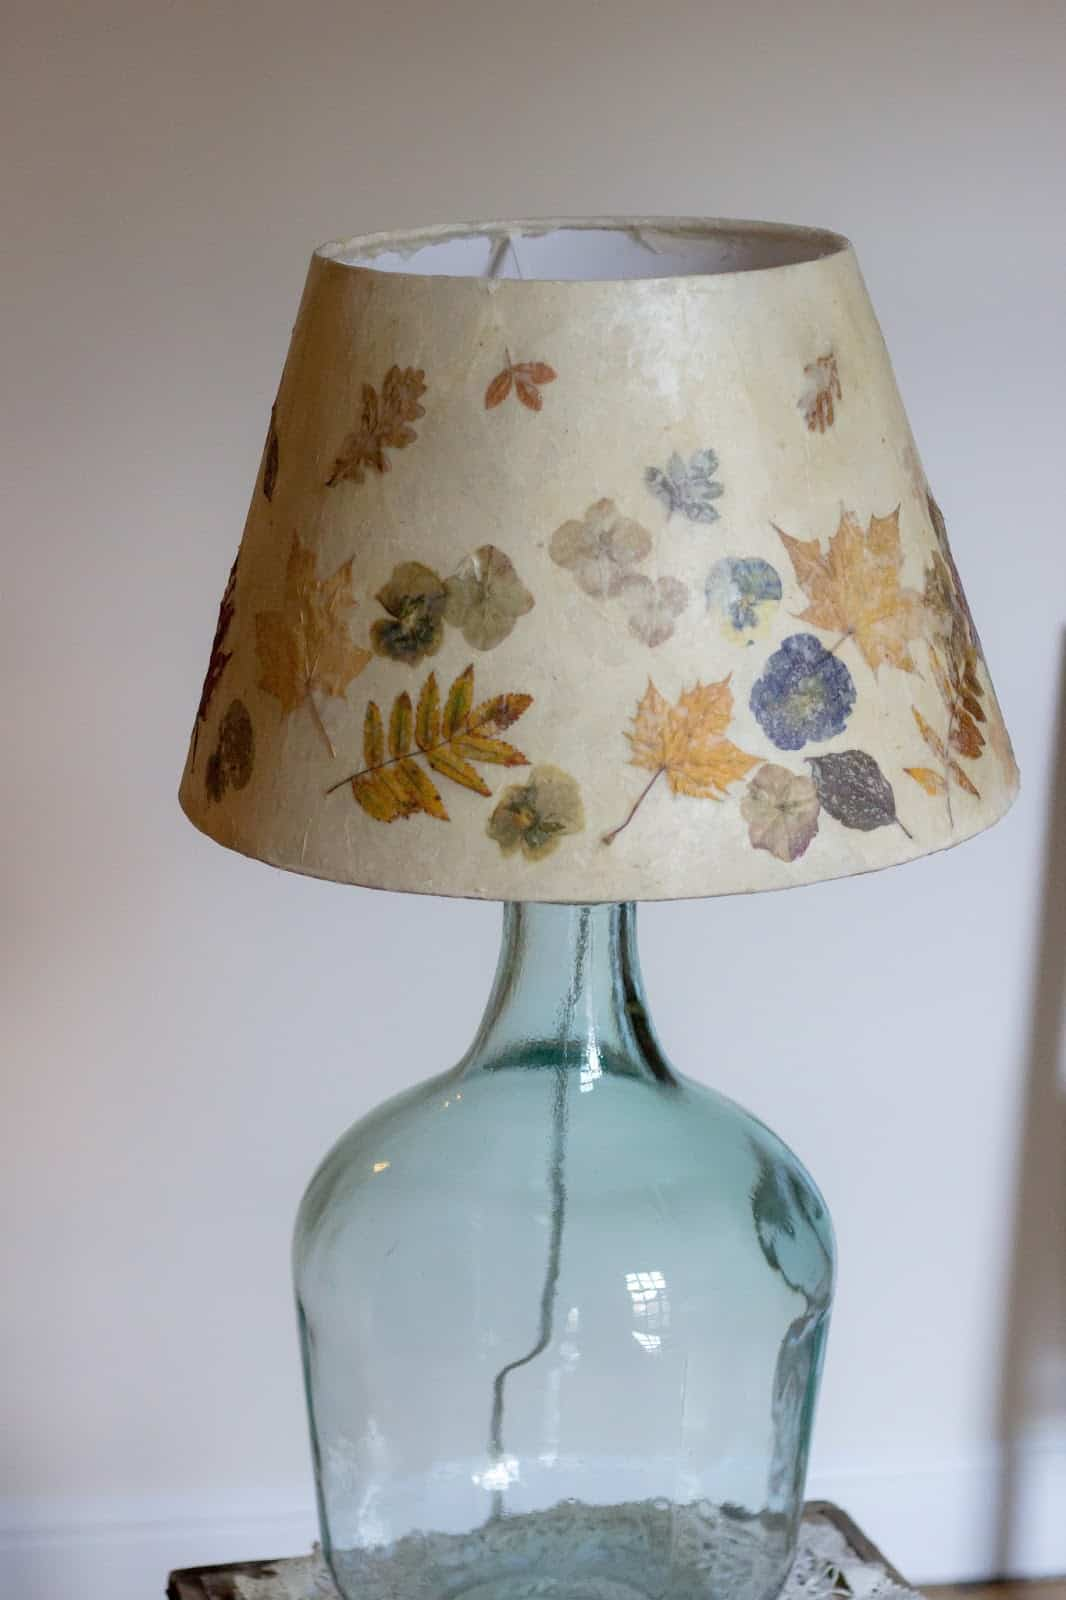 Vintage inspired dried flower lampshade